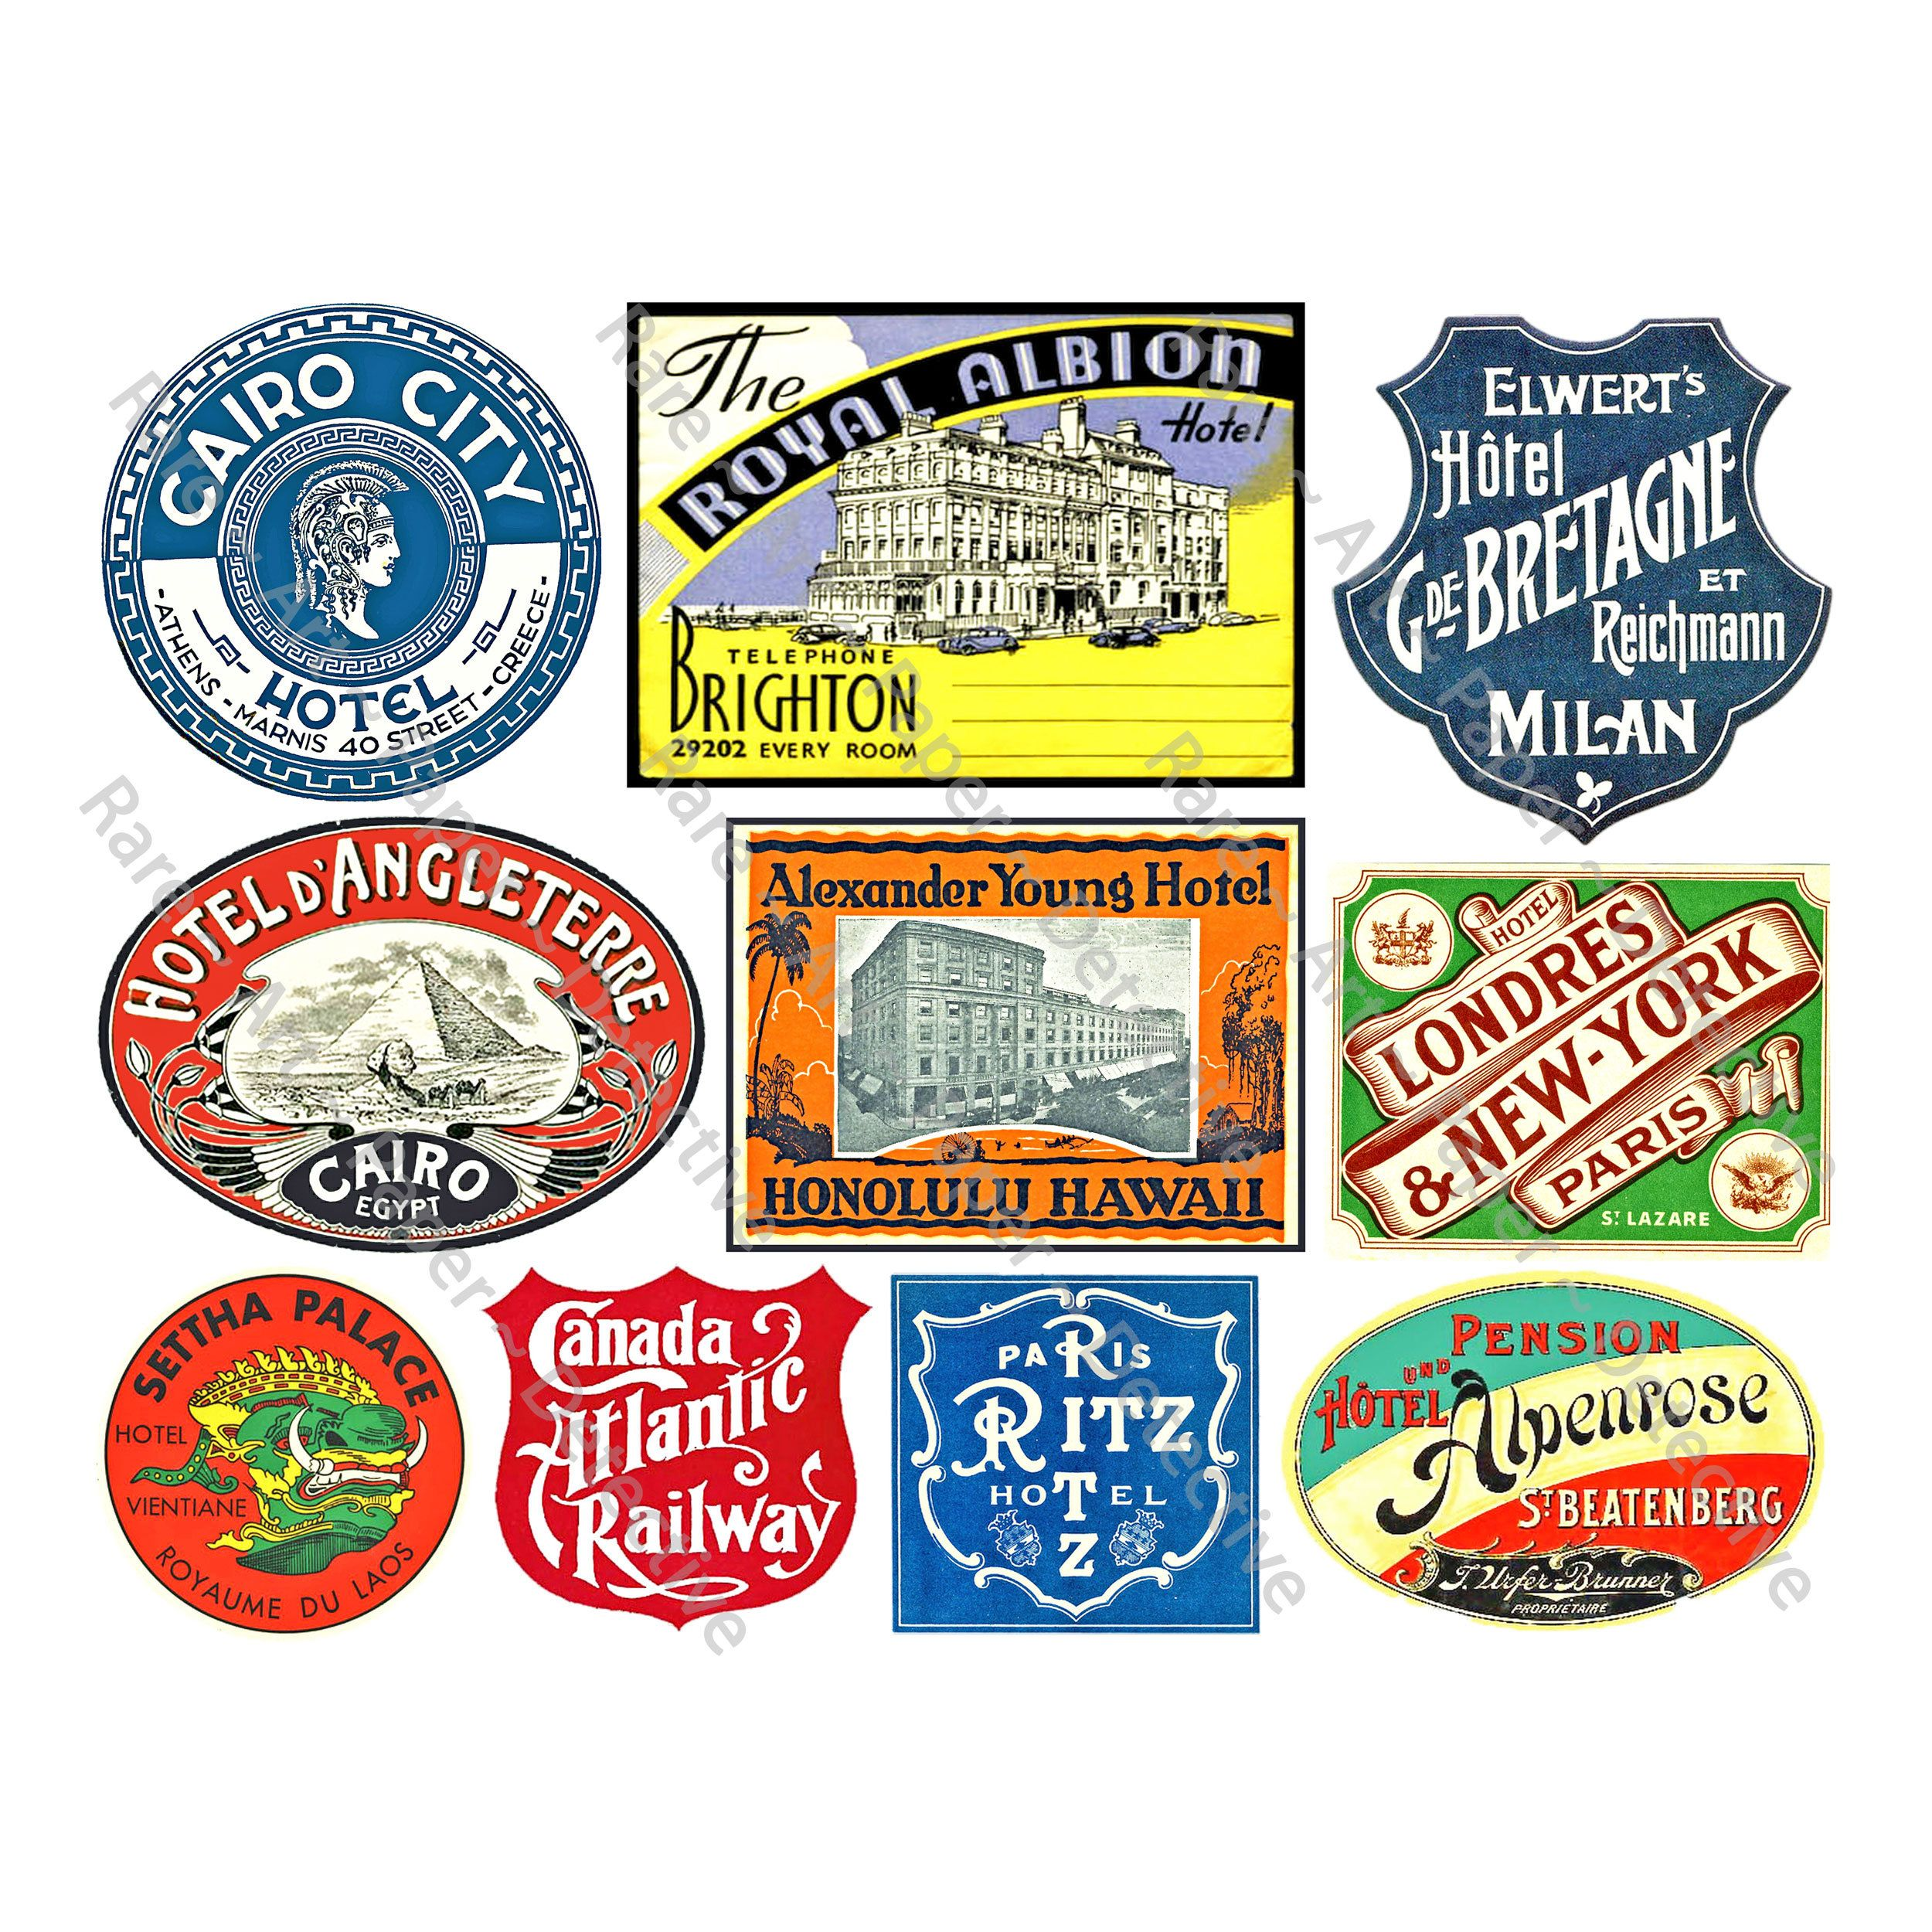 Travel Stickers Luggage Labels 10 Baggage Tags Retro Travel Etsy In 2020 Journal Stickers Travel Stickers Luggage Labels